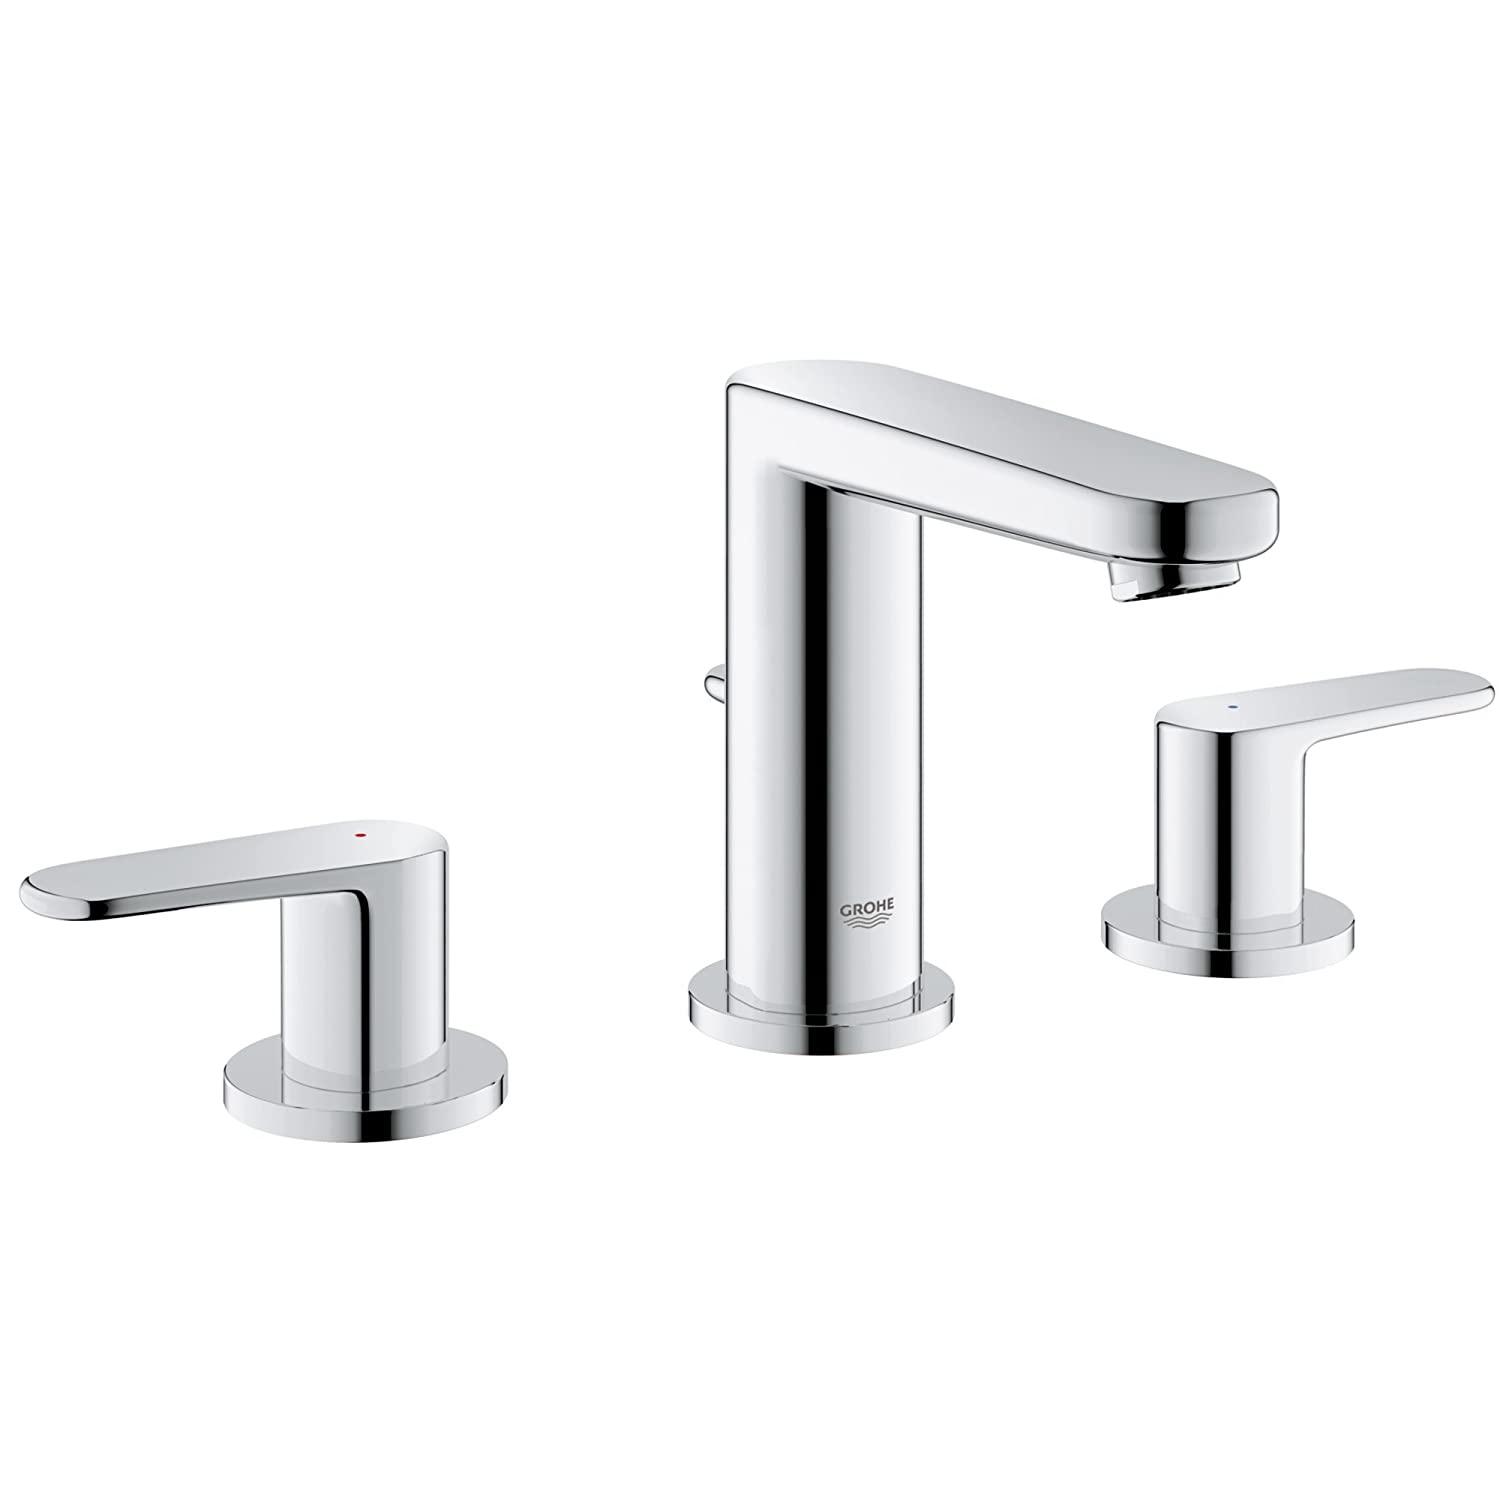 Europlus 8 in. Widespread 2-Handle Low Arc Bathroom Faucet - 1.5 GPM ...